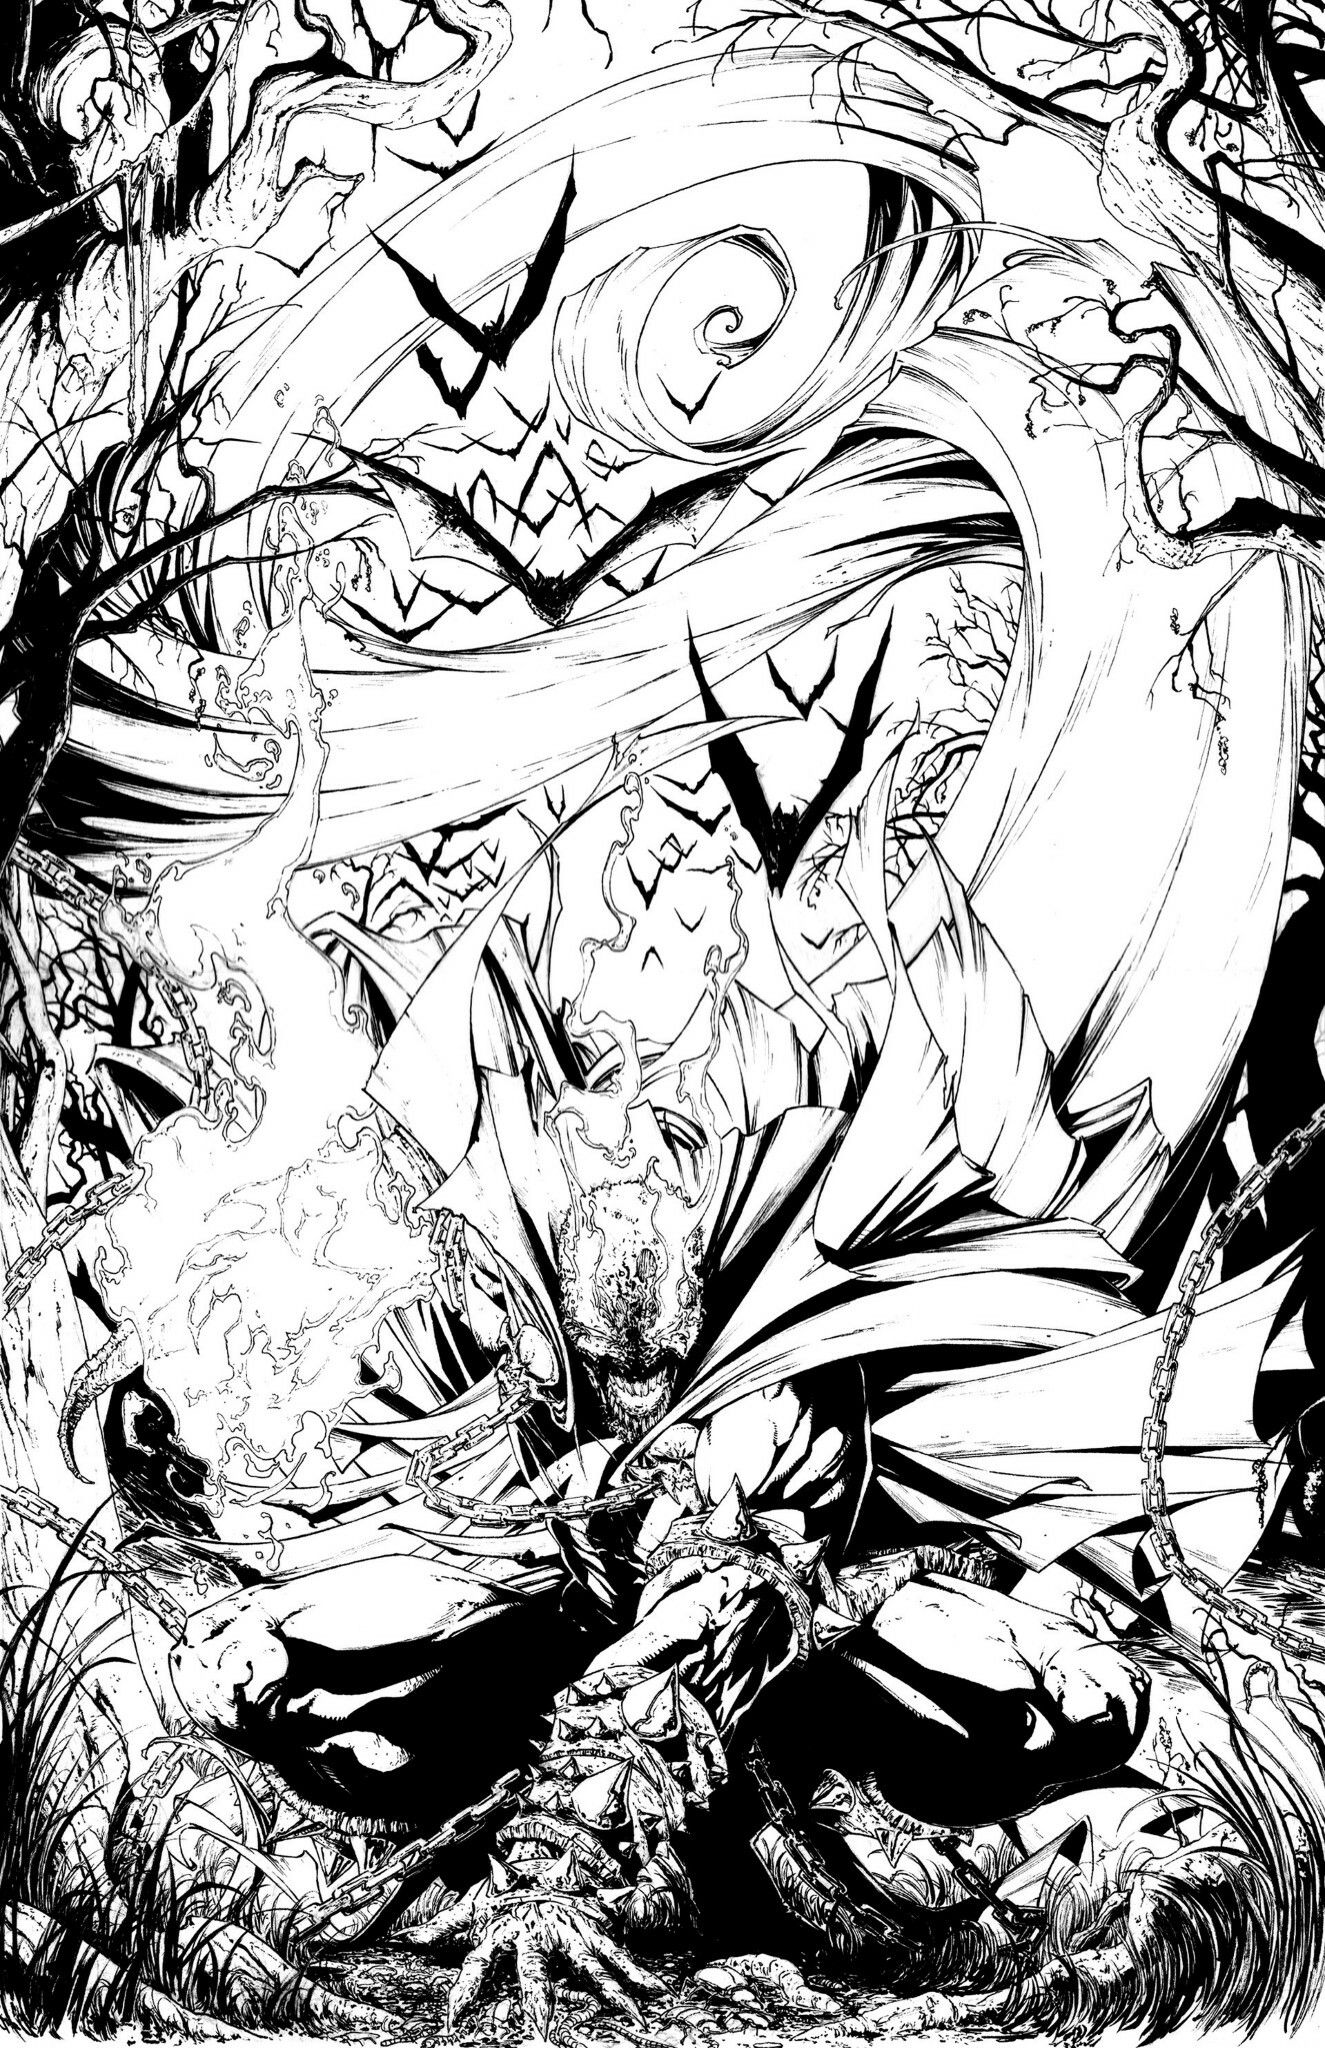 Spawn Pencils and Inks by Raymond Gay | +Other | Pinterest